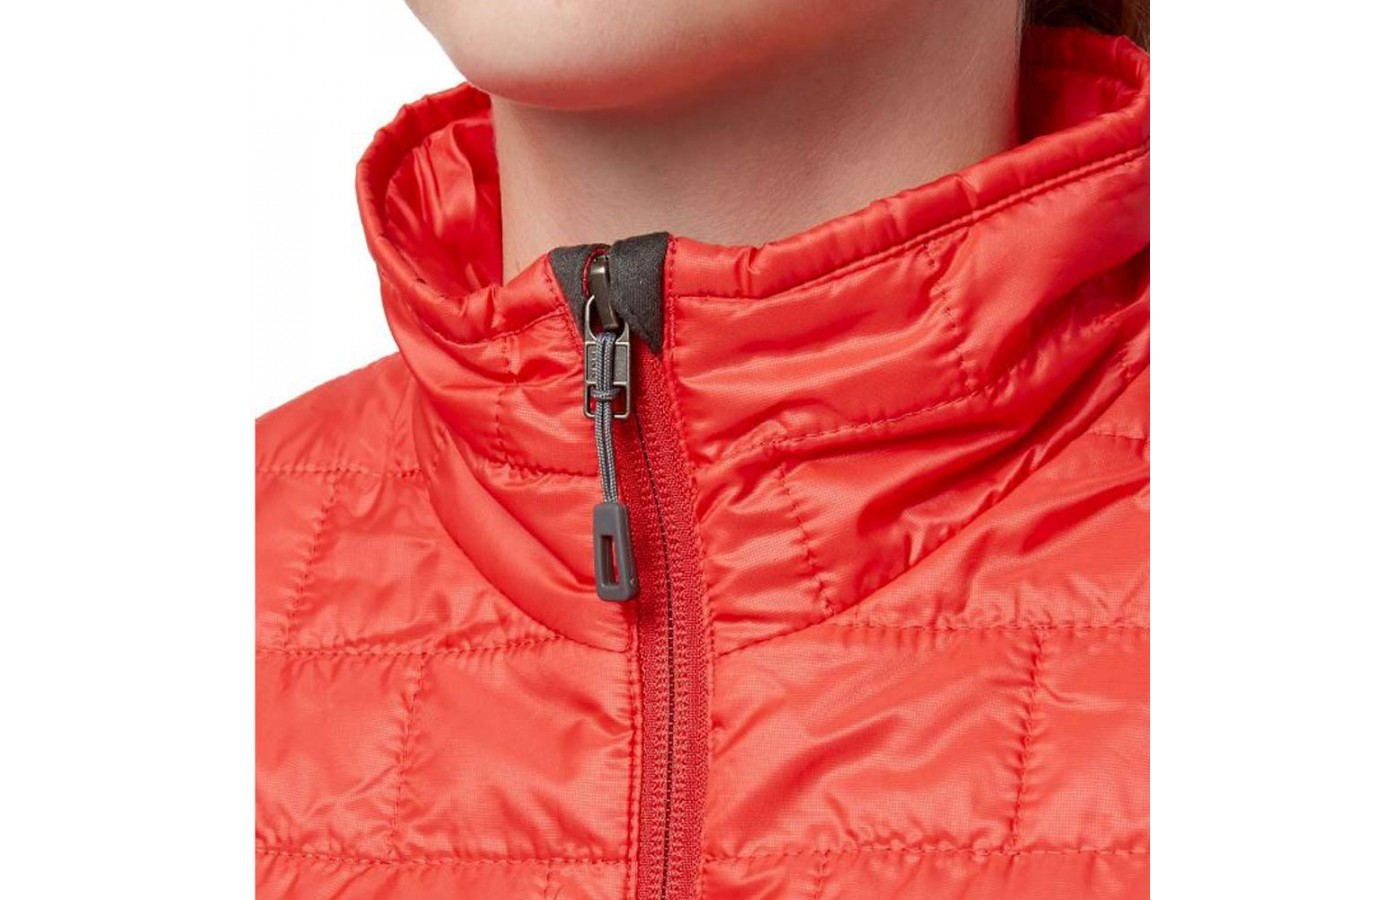 For next-to-skin comfort, the jacket has a zipper garage at the chin.